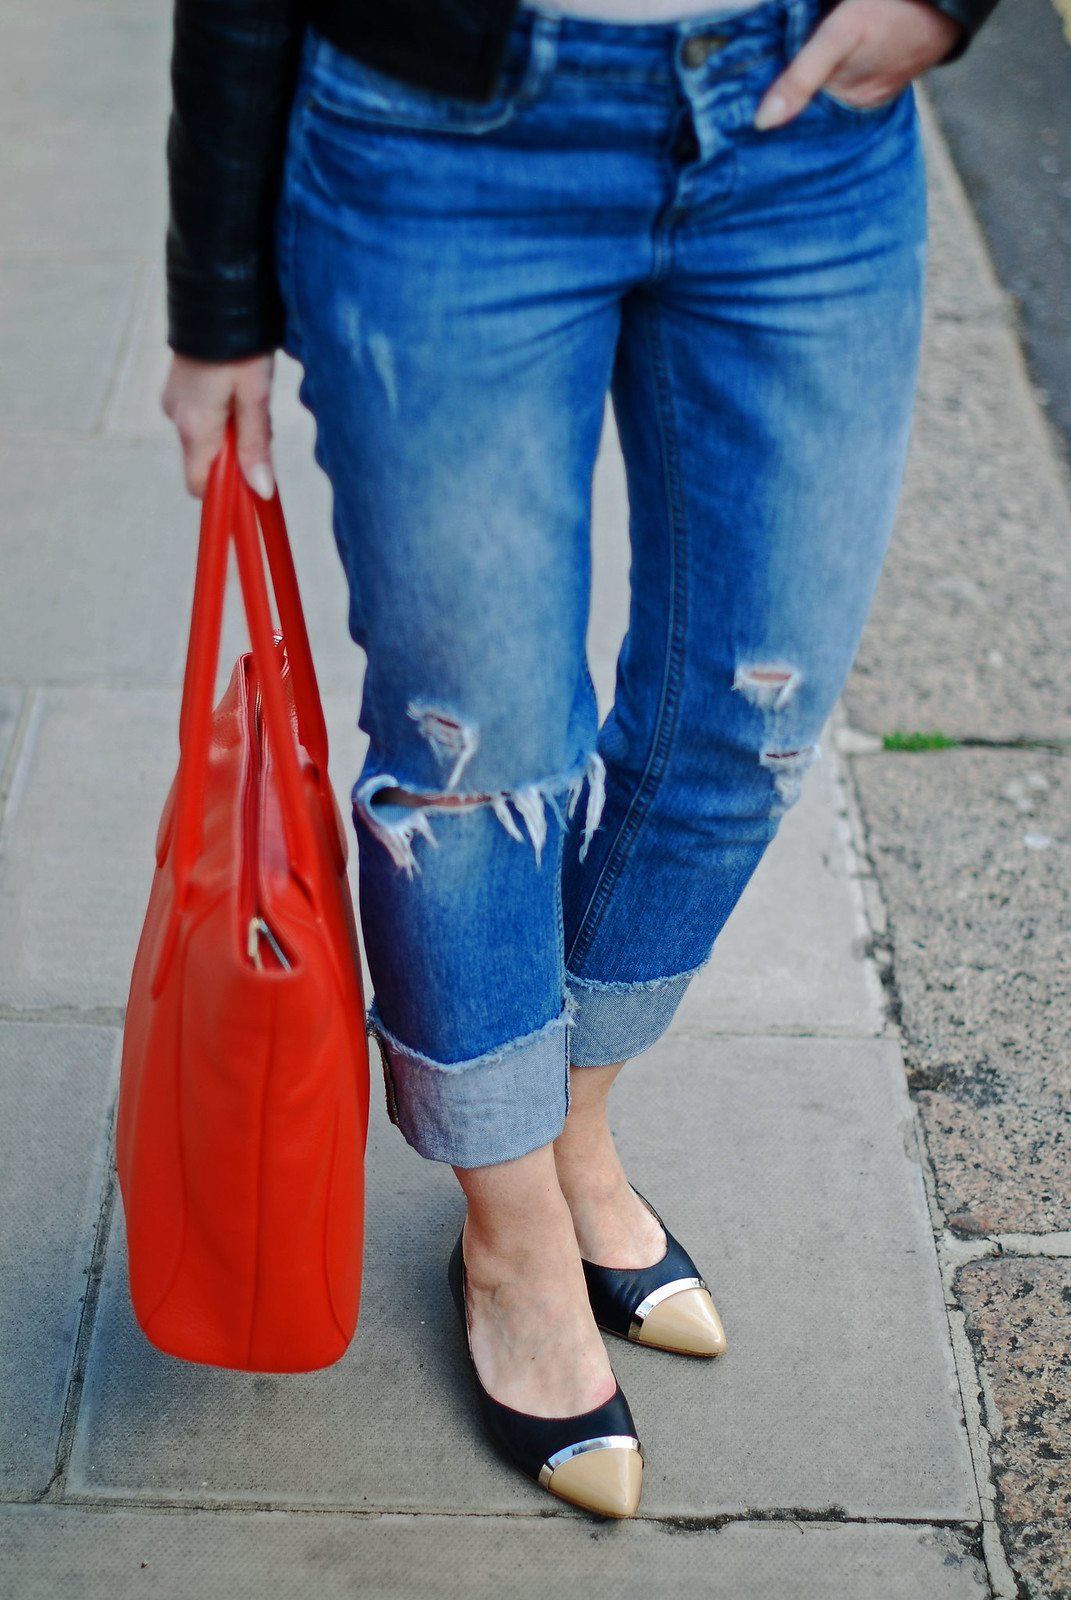 SS16 Style: Distressed boyfriend jeans, black biker jacket, orange tote, pointed two-tone flats | Not Dressed As Lamb